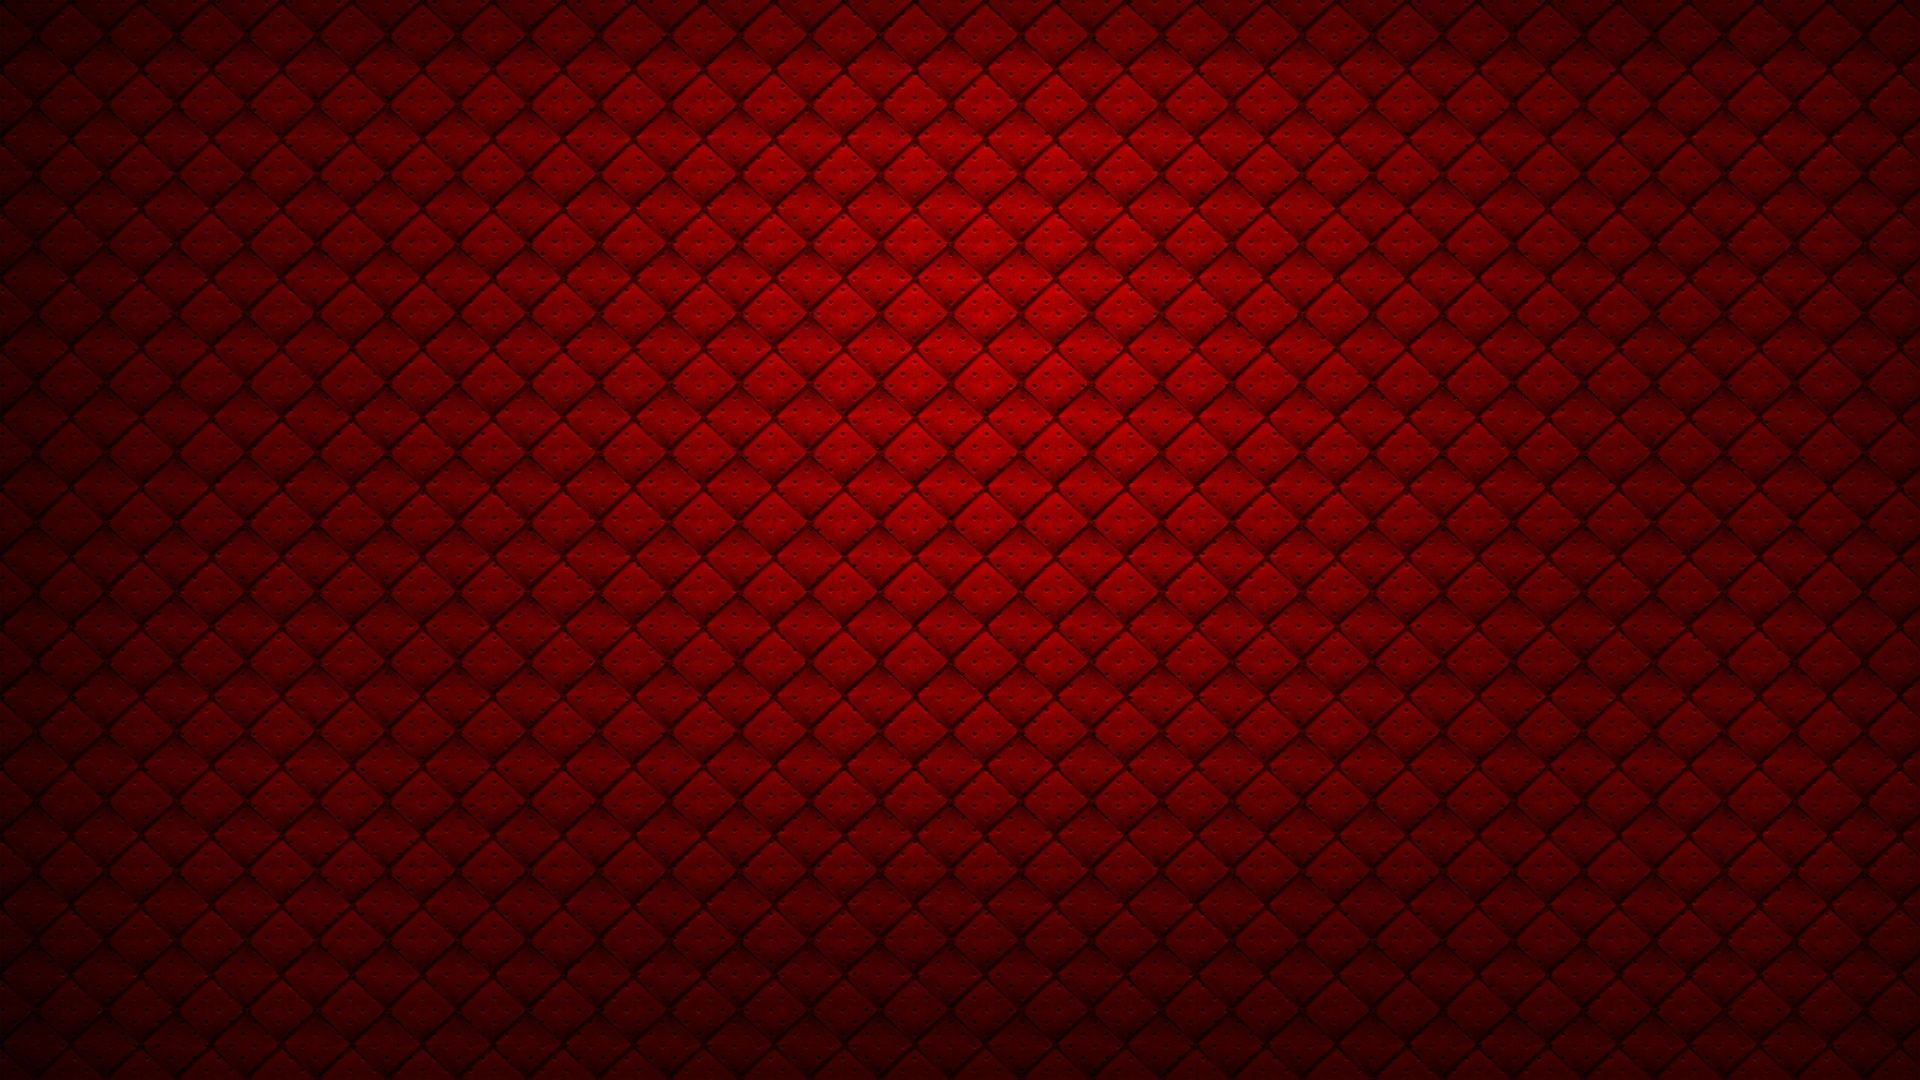 Wallpaper 1920x1080 Red Wallpapers Fire Horse Ink Smoke Cubes Splash On Cards Ice Jpg 1920 1080 Red Wallpaper Dark Red Wallpaper Red Pictures